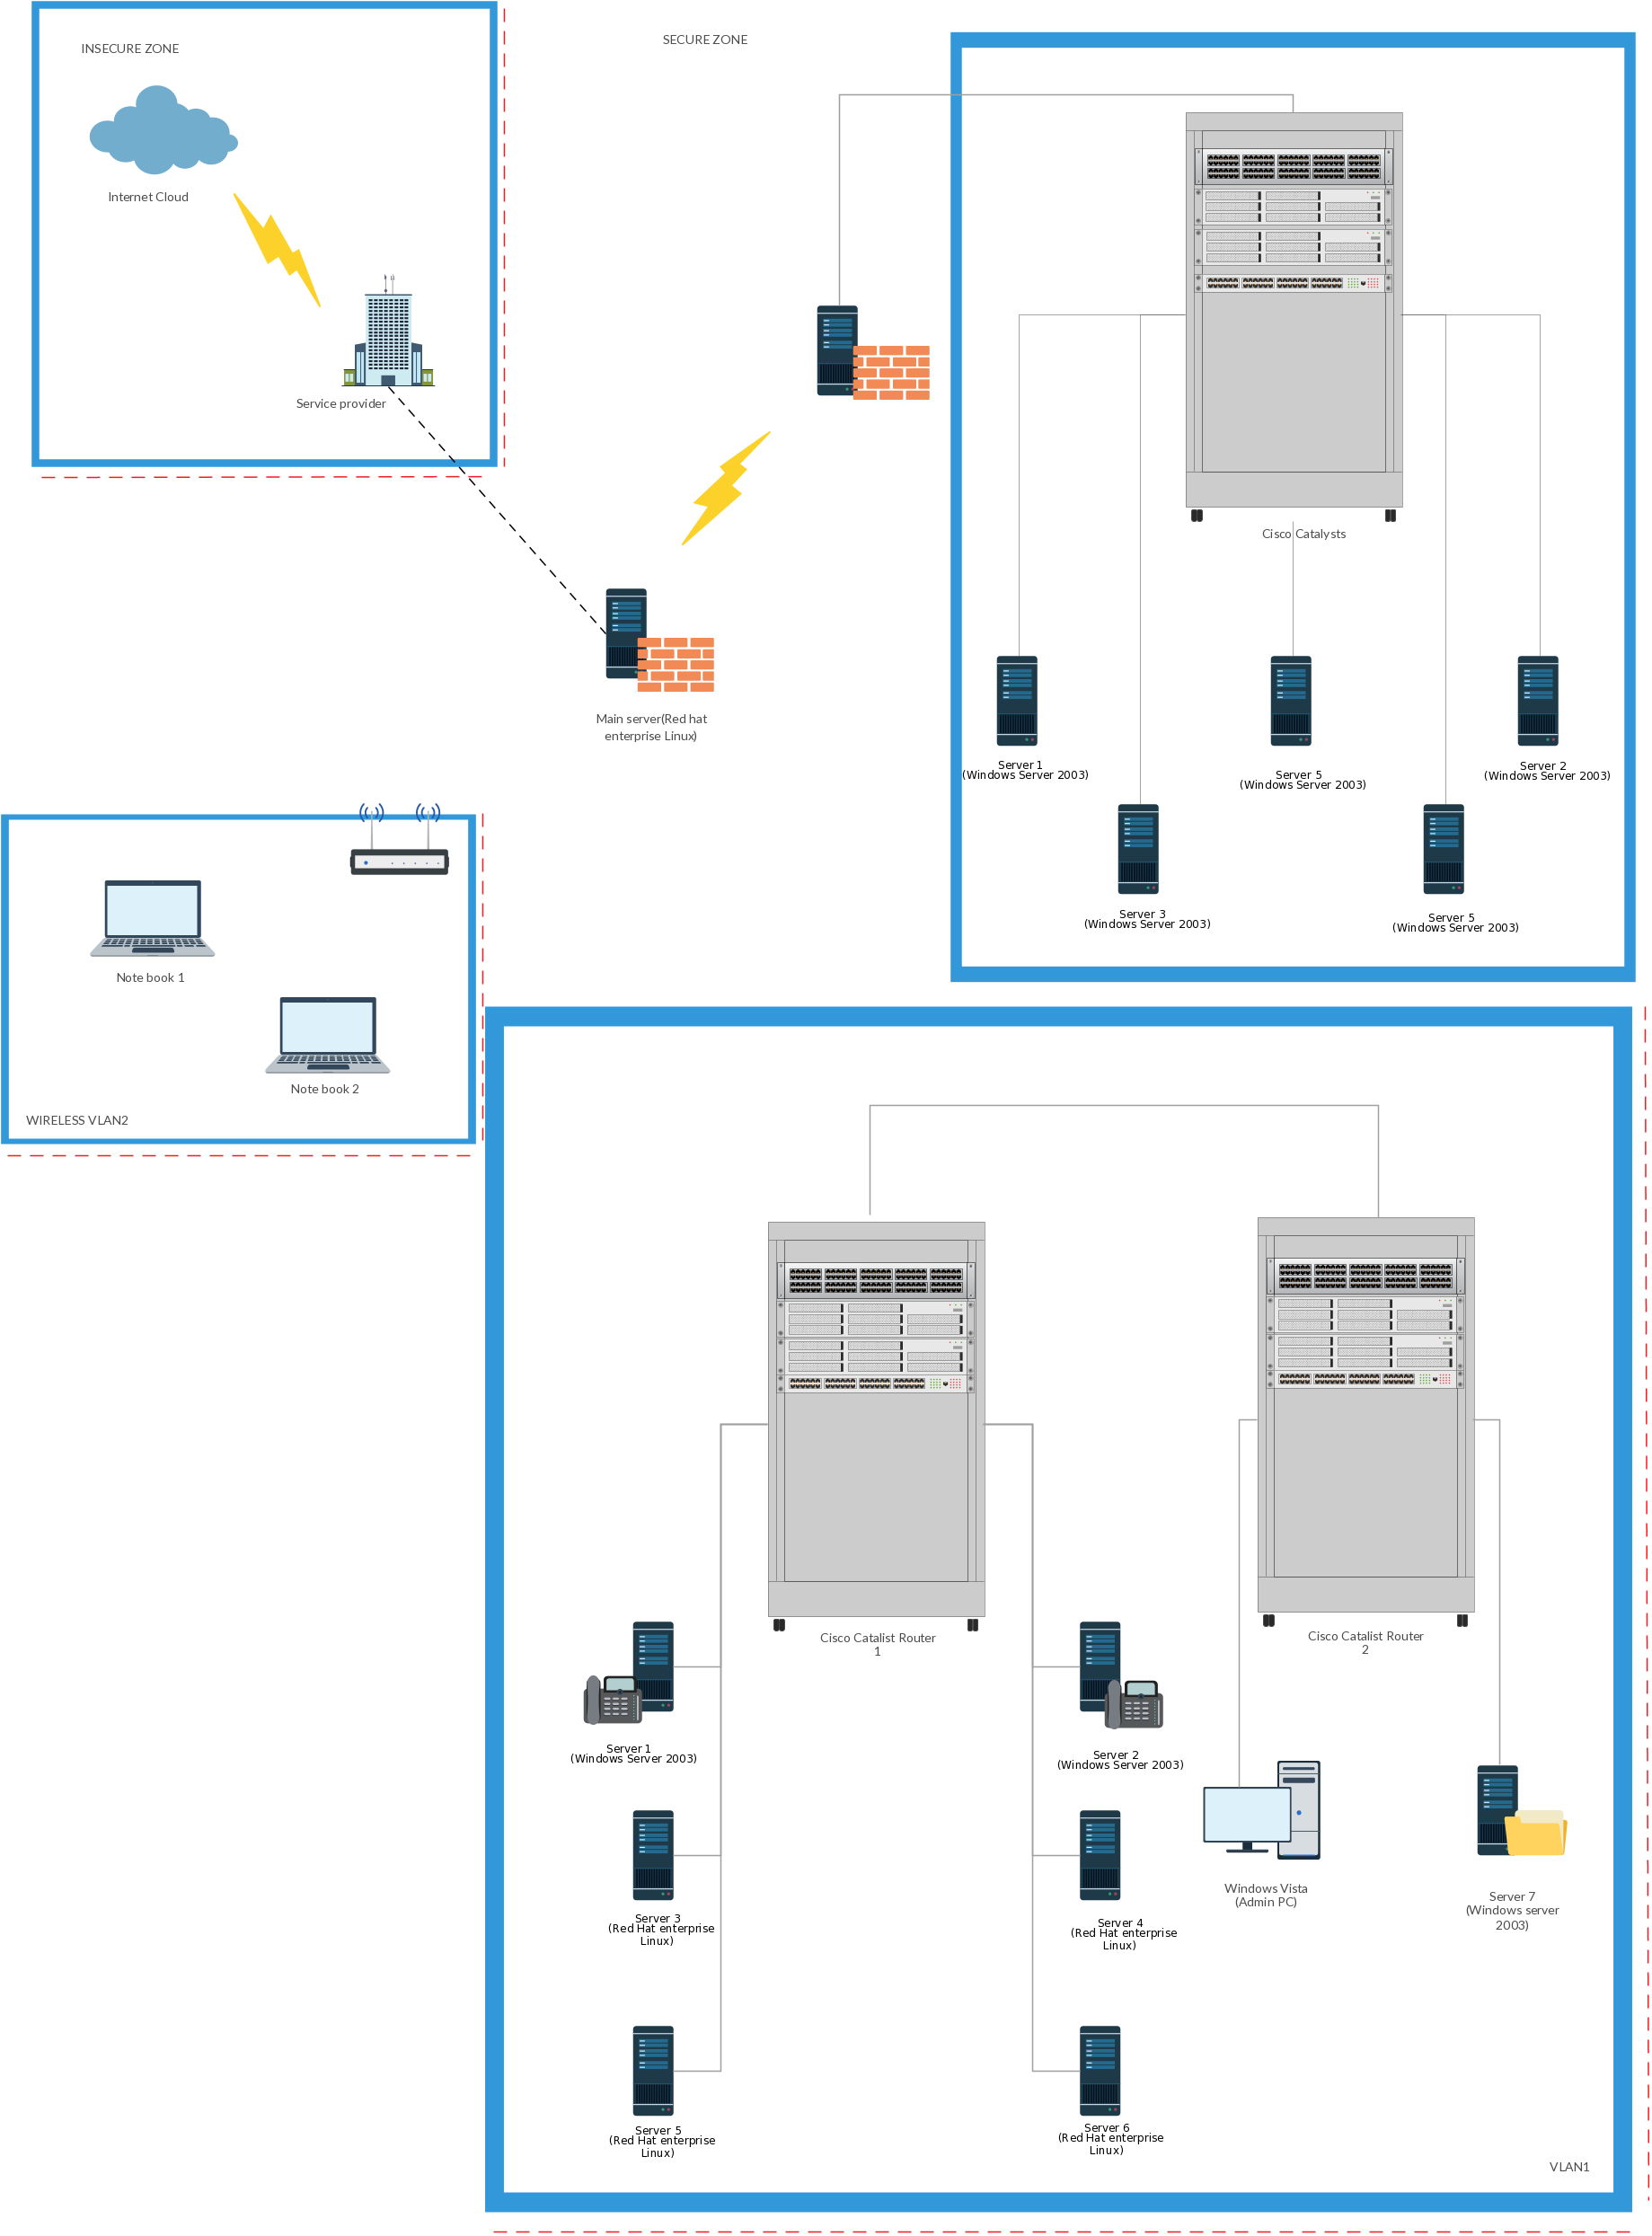 Virtual Local Area Network Diagram Template Click The Image Visio Wiring To Use As A